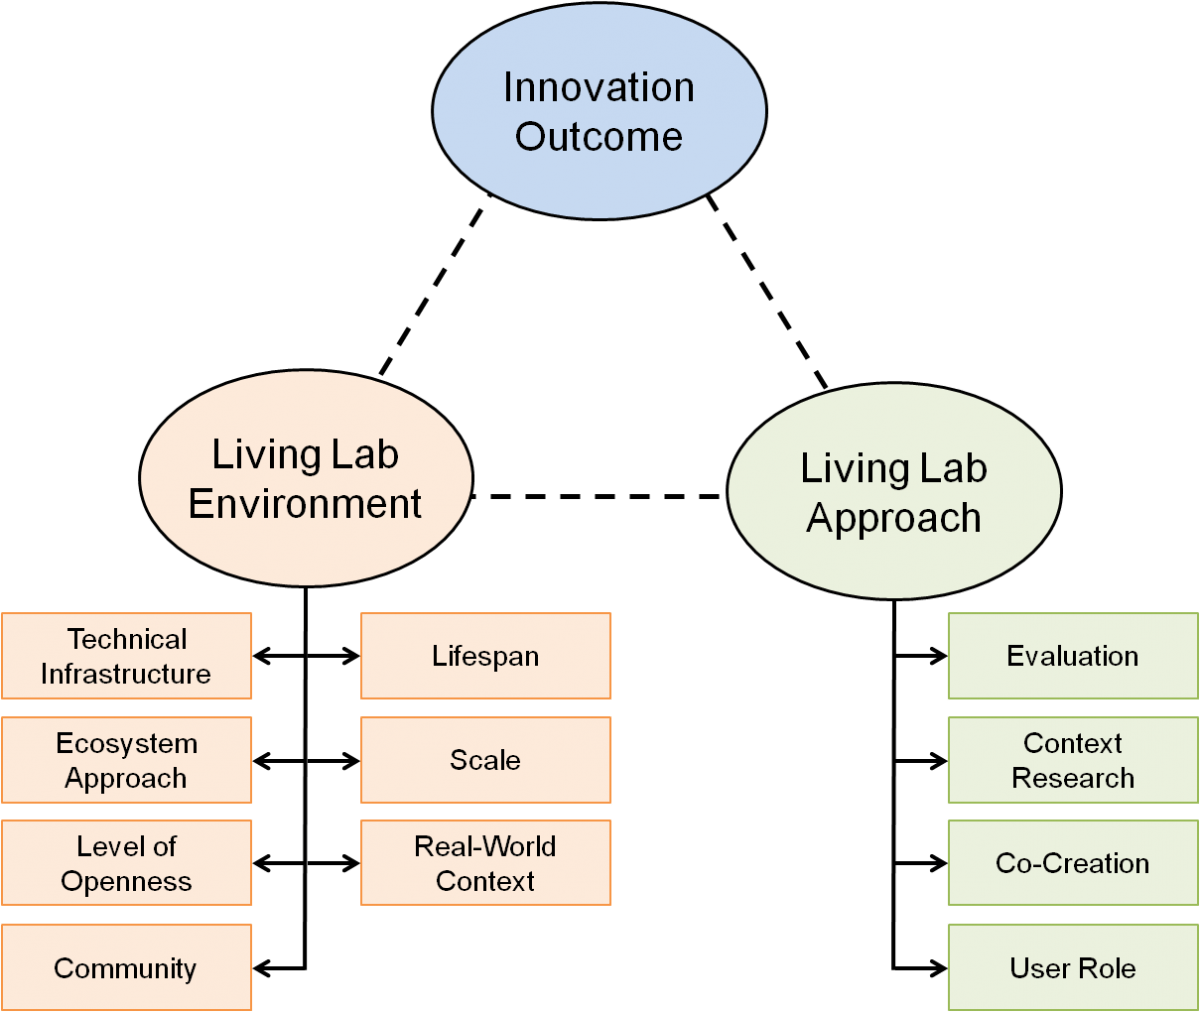 Linking Living Lab Characteristics And Their Outcomes